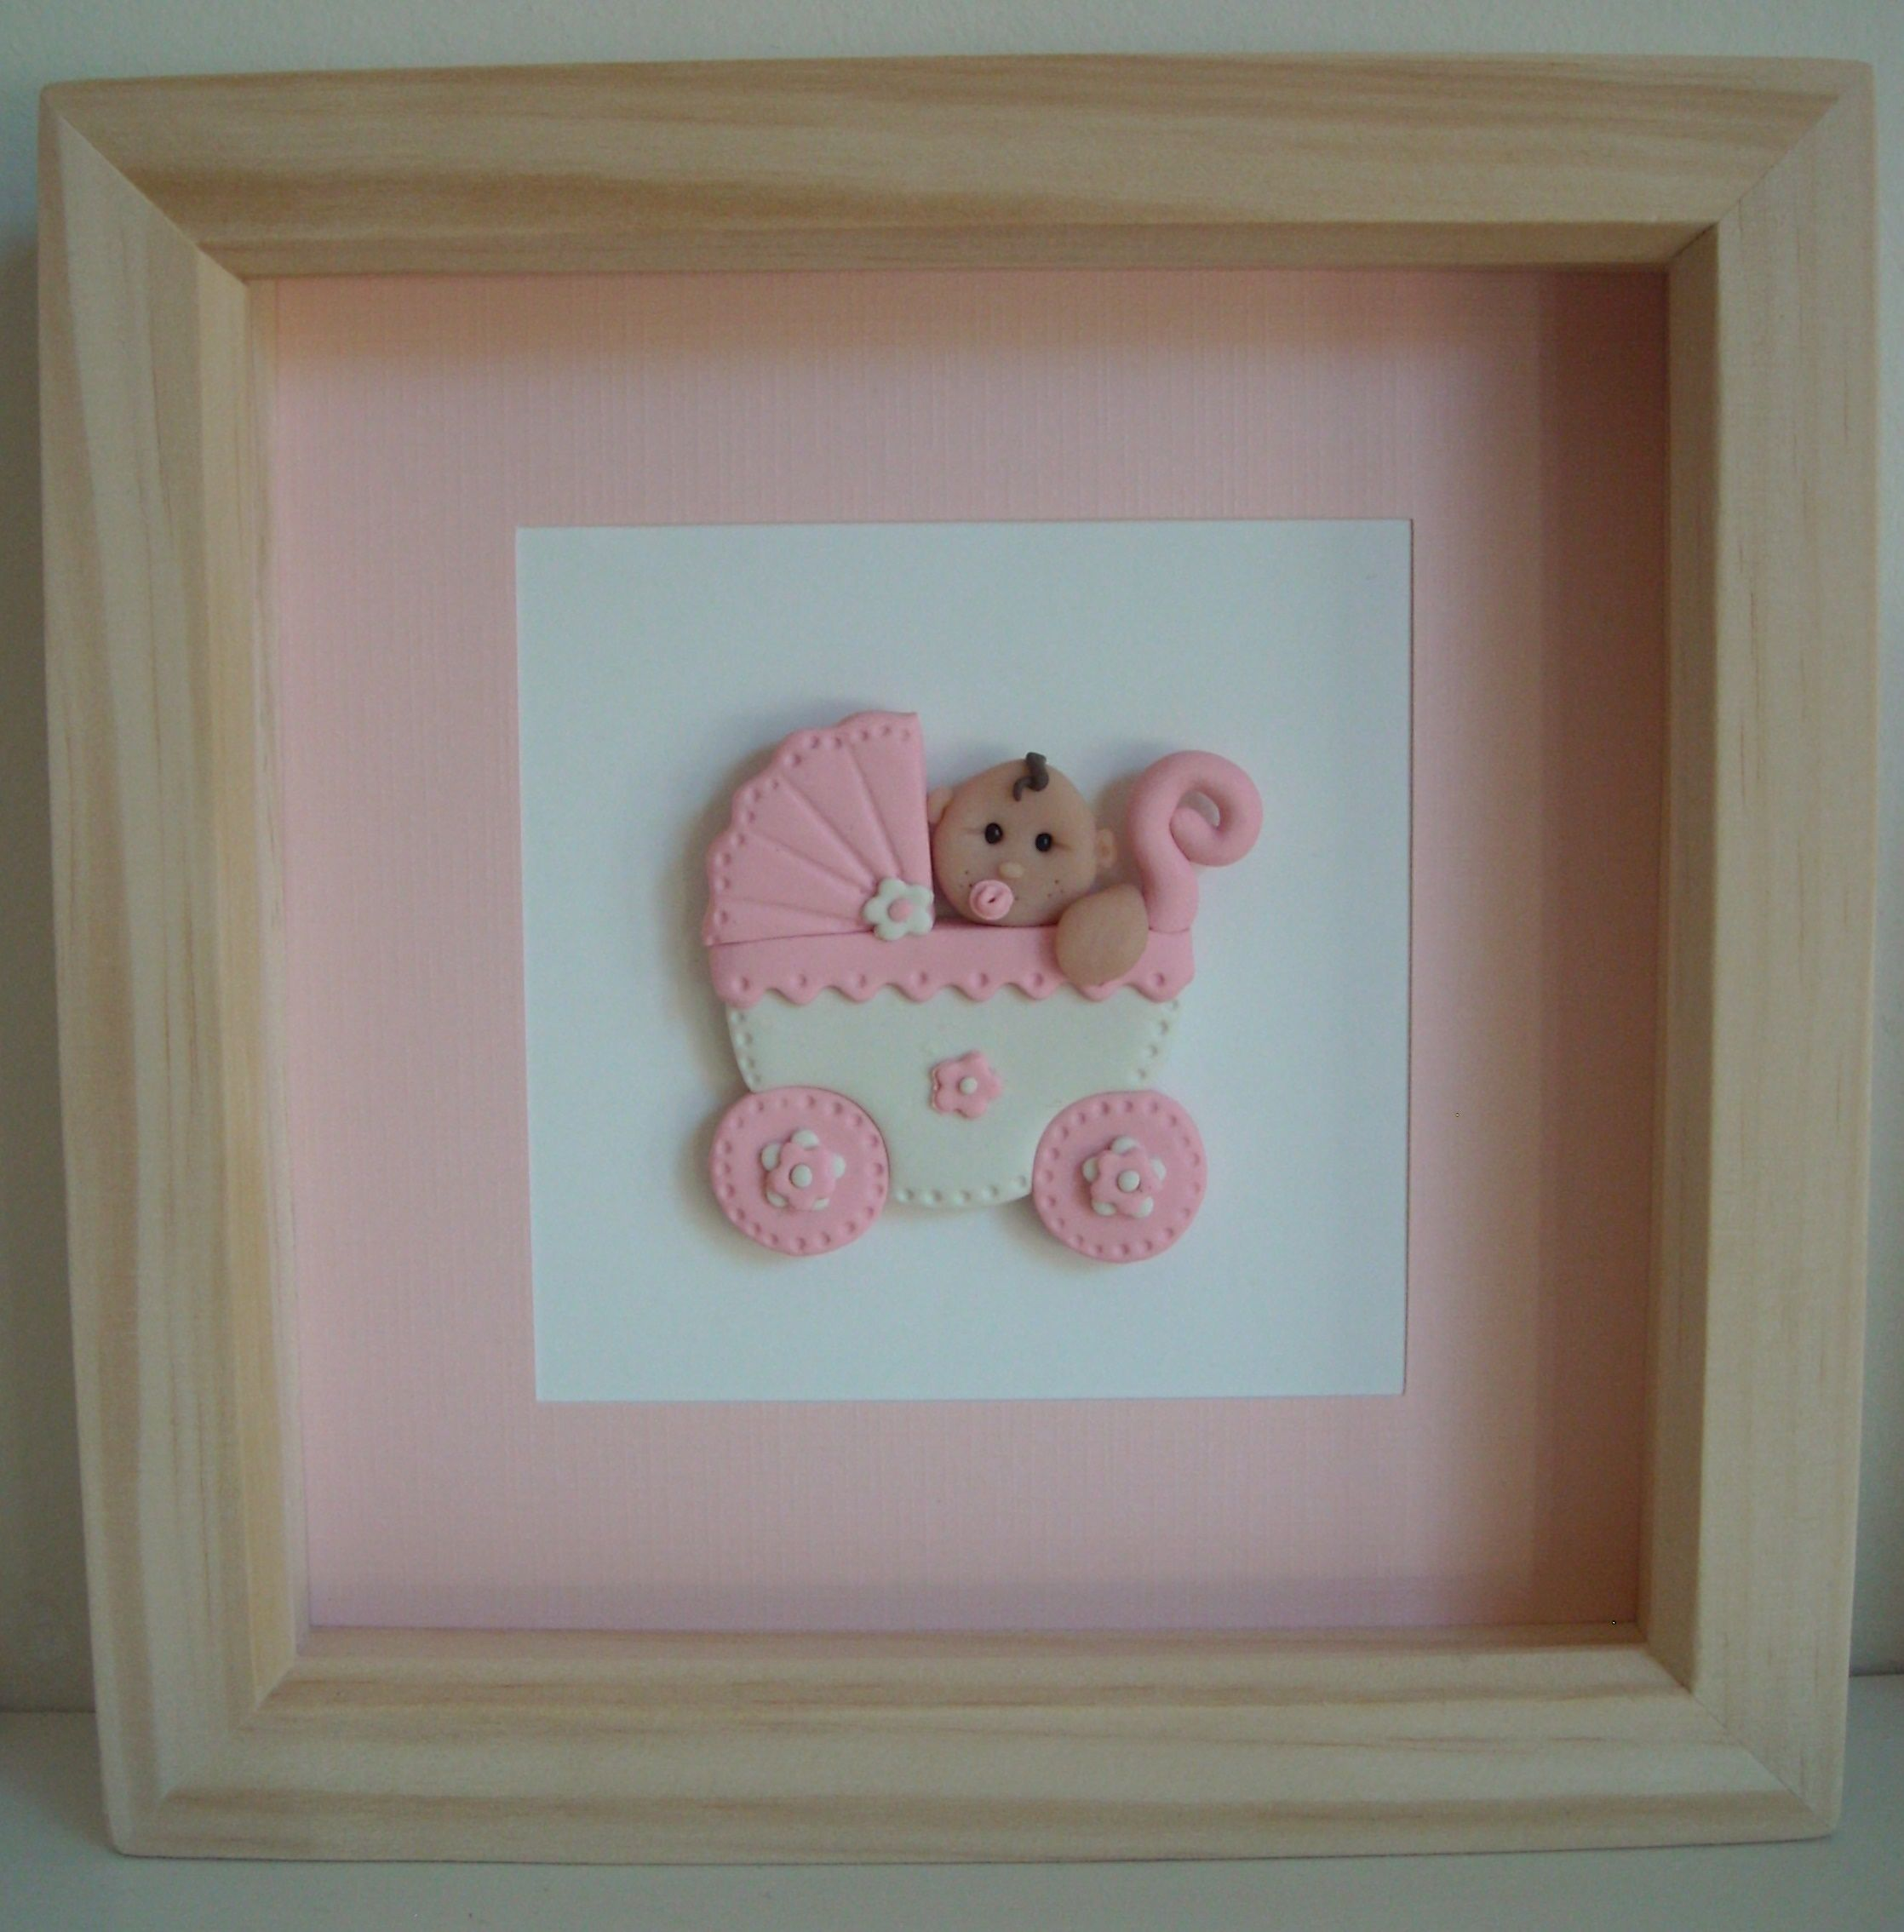 Fimo 3d ballerina in a box picture frame fimo pinterest fimo 3d new baby picture in a box picture frame jeuxipadfo Images